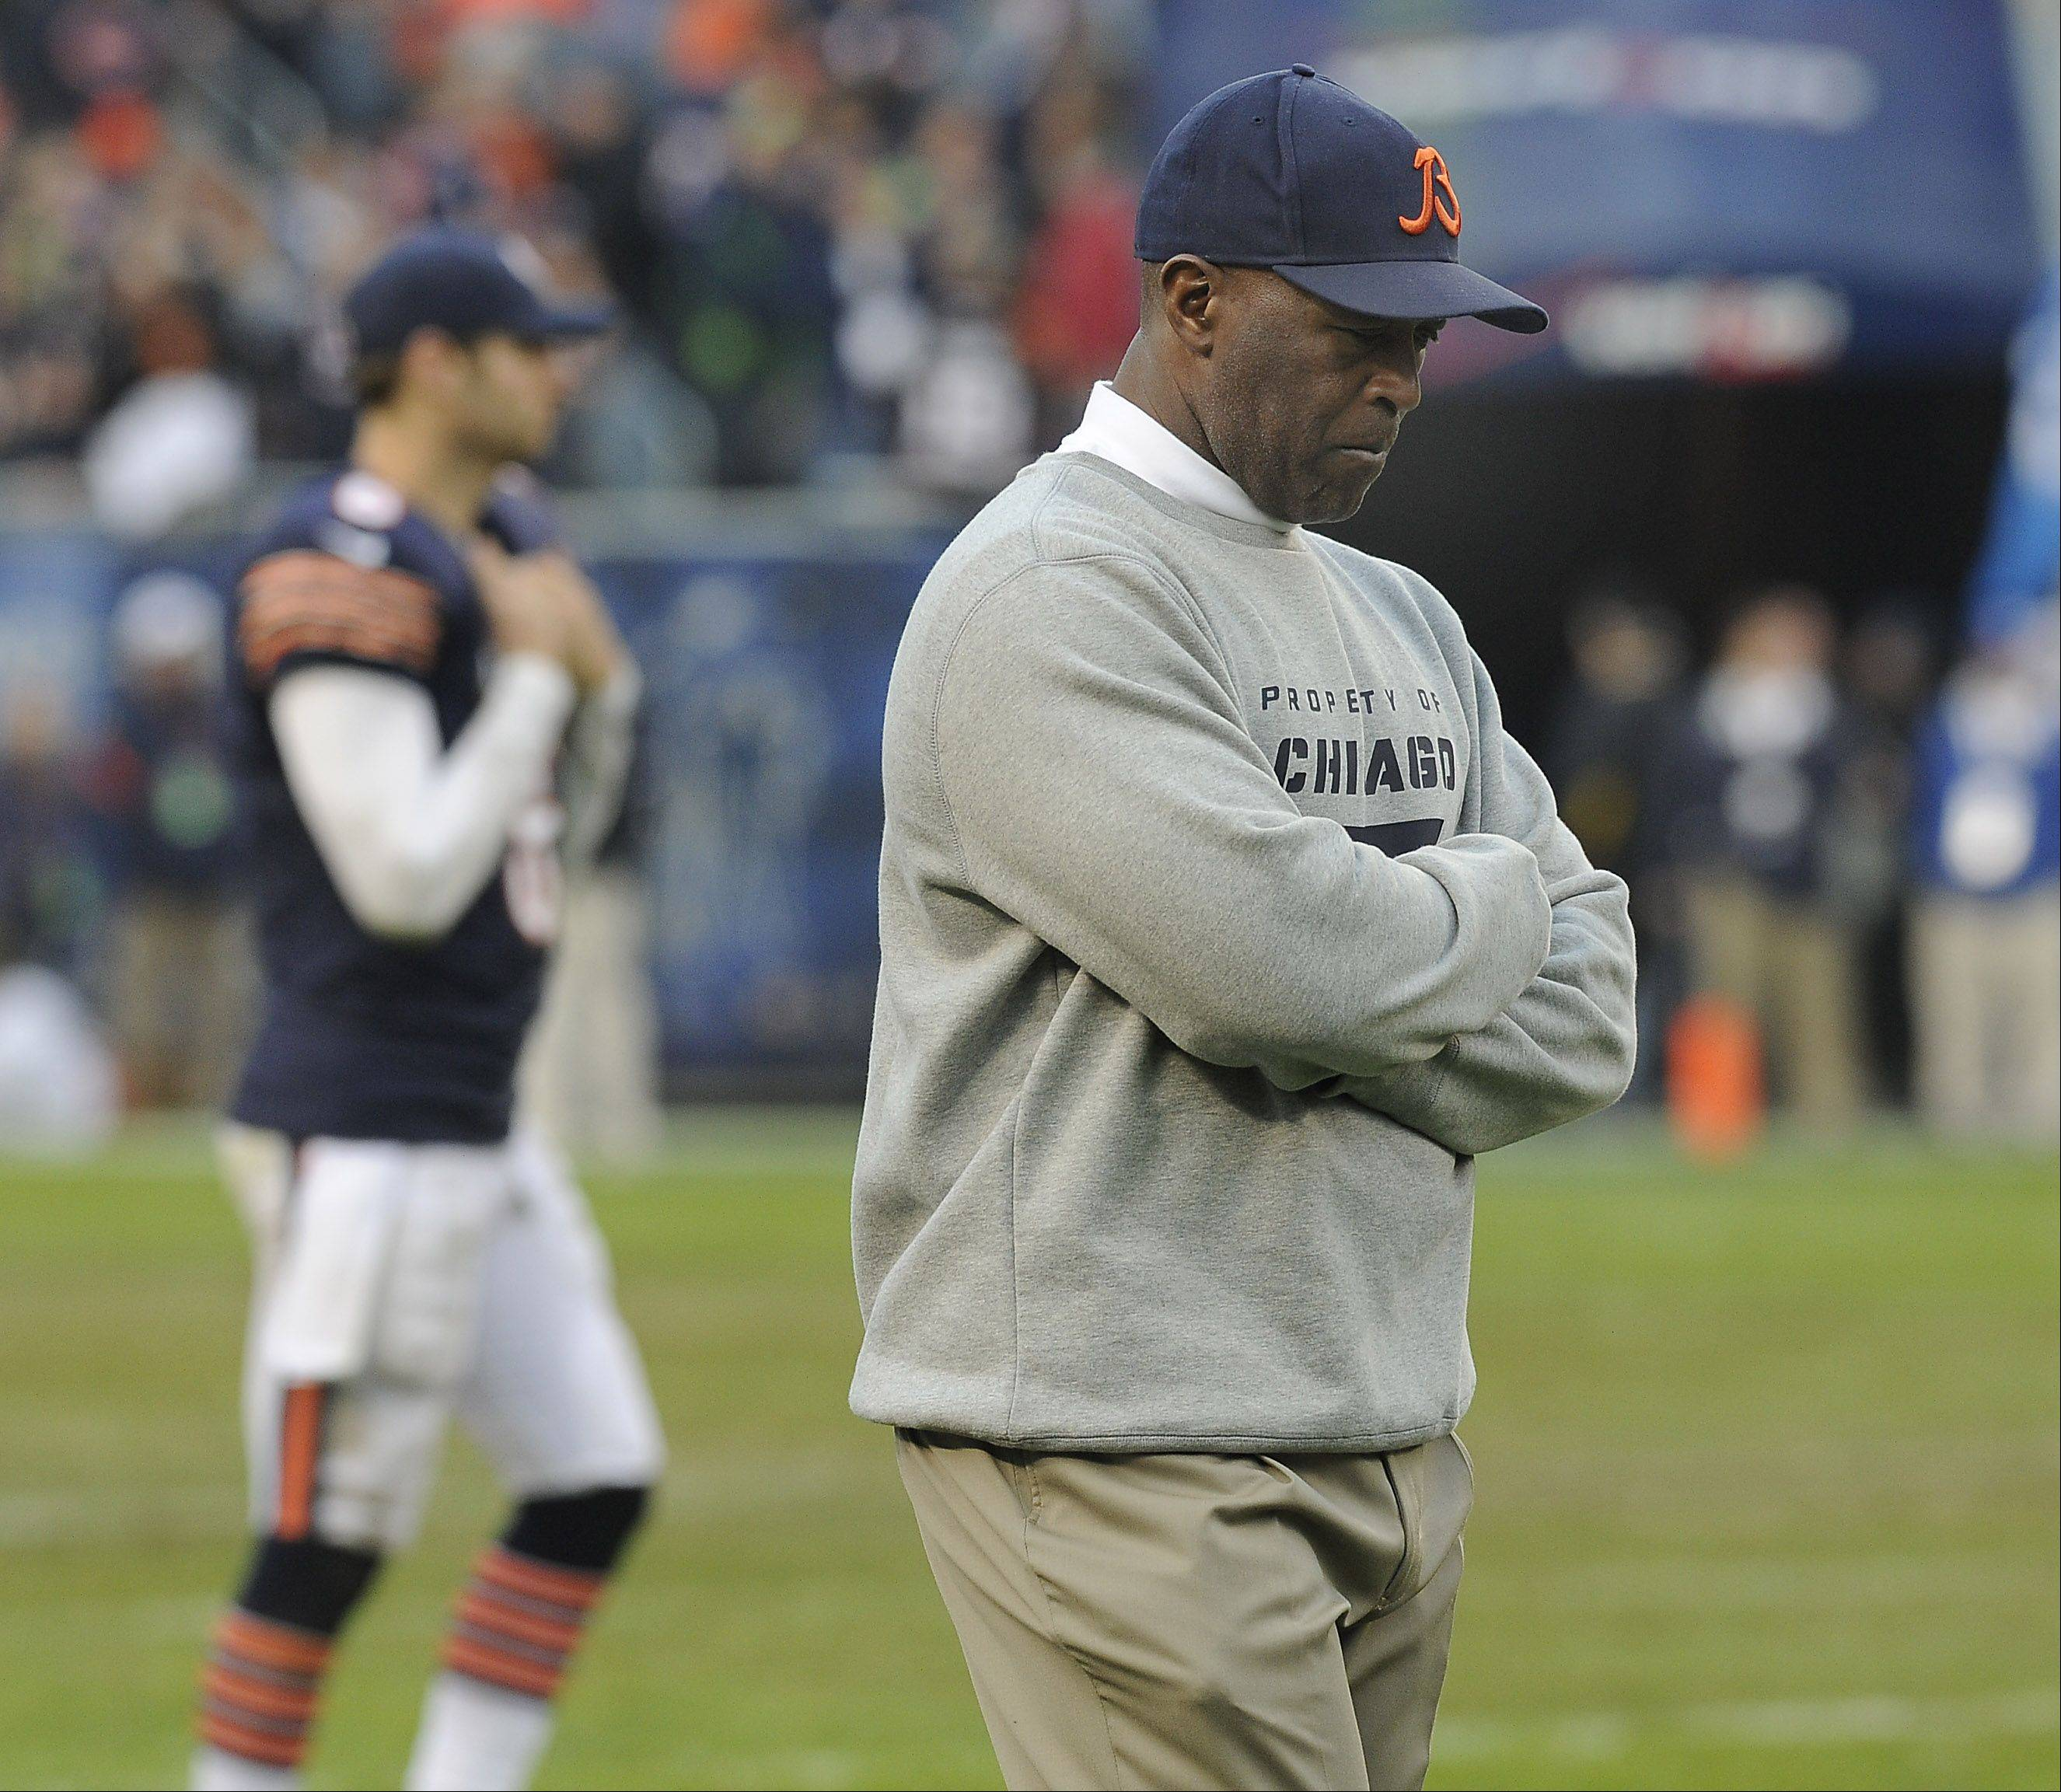 Bears coach Lovie Smith looks down at the end of the game as quarterback Jay Cutler heads off the field in the 23-17 loss the Seahawks at Soldier Field in Chicago.